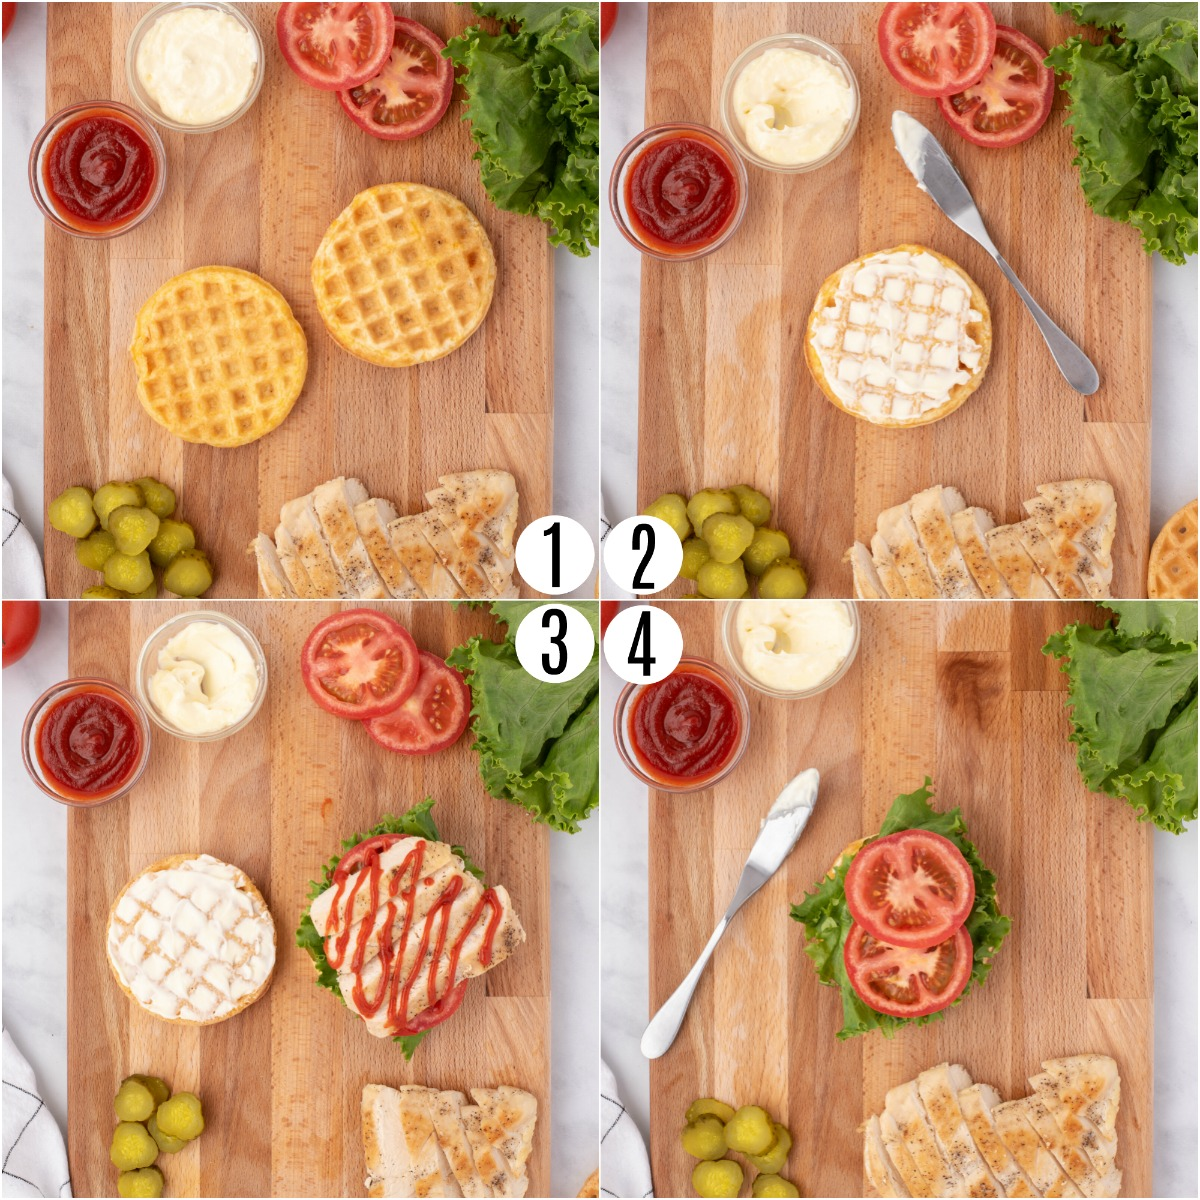 Step by step photos showing how to assemble chicken cheddar chaffle sandwich.